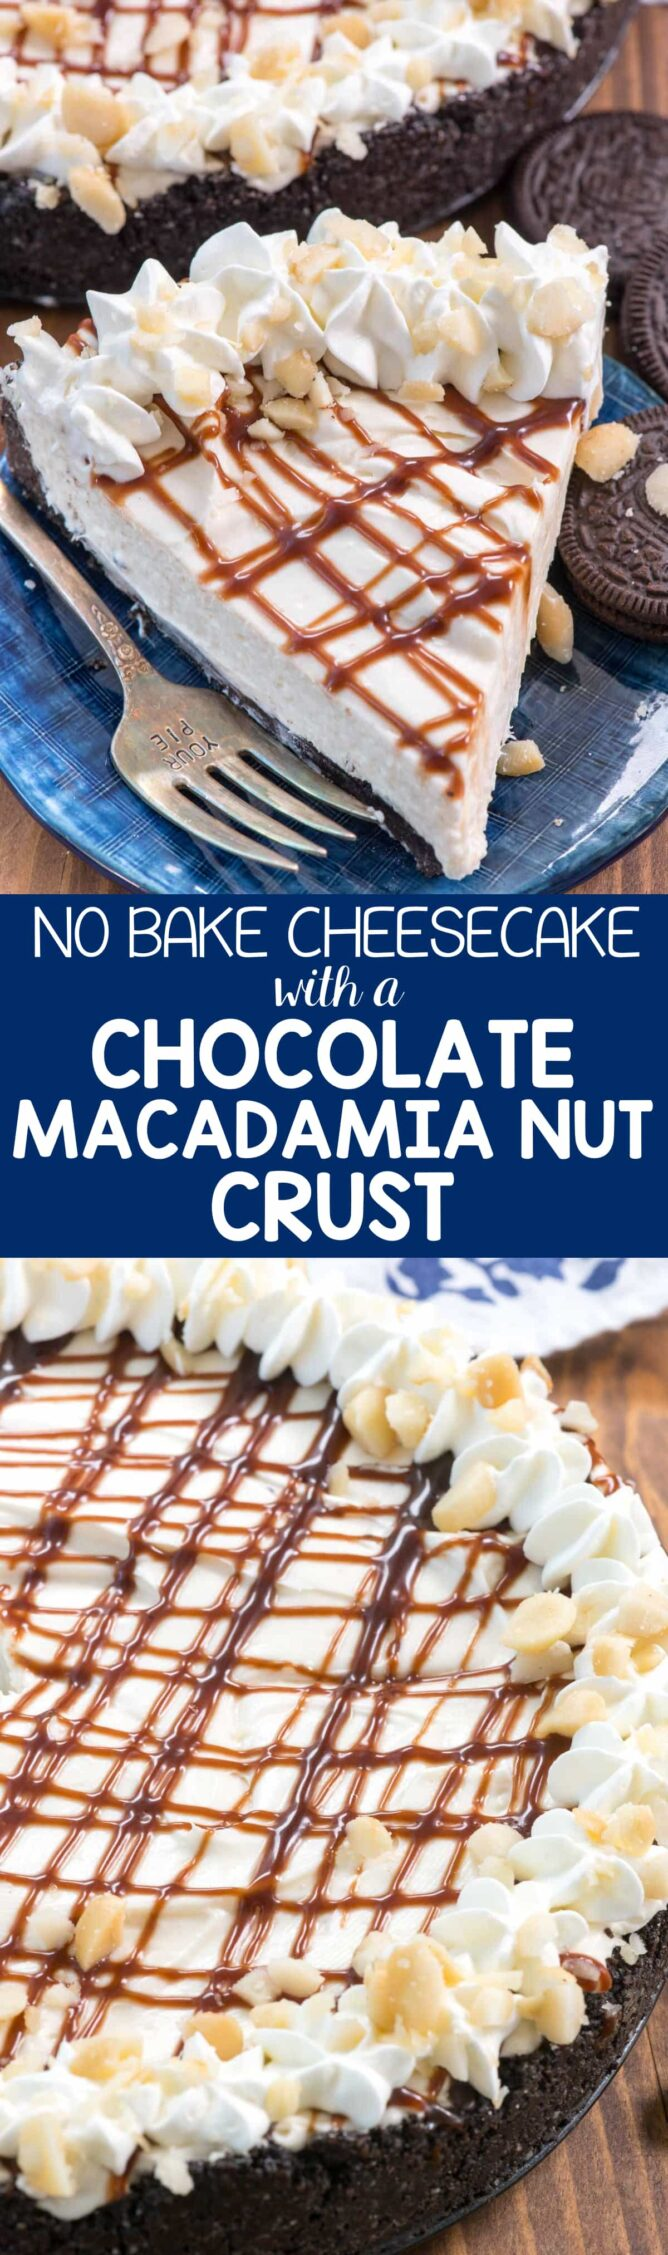 collage photos The PERFECT No Bake Cheesecake with Chocolate Macadamia Nut Crust! This easy cheesecake recipe is perfect with an oreo crust filled with macadamia nuts. No bake means the perfect for summer recipe!